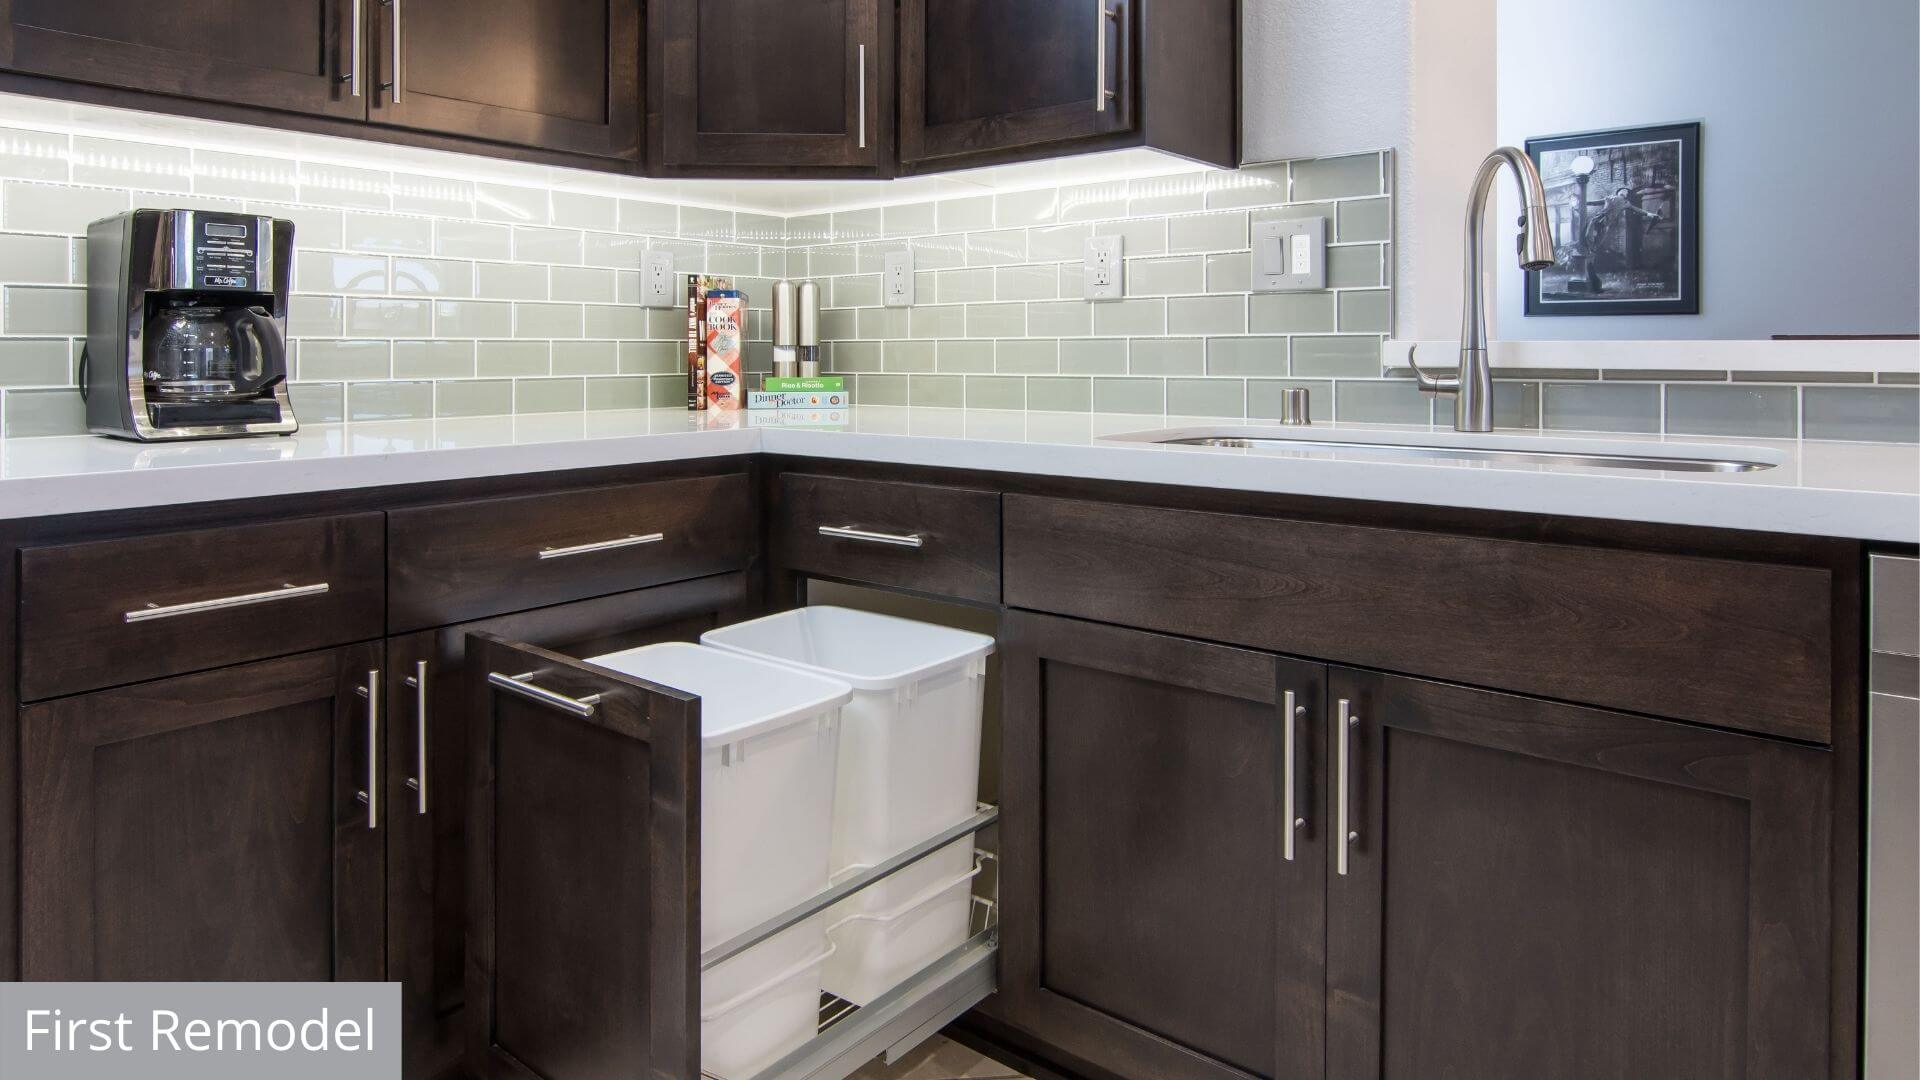 Lenton_Company_First_Remodel_8